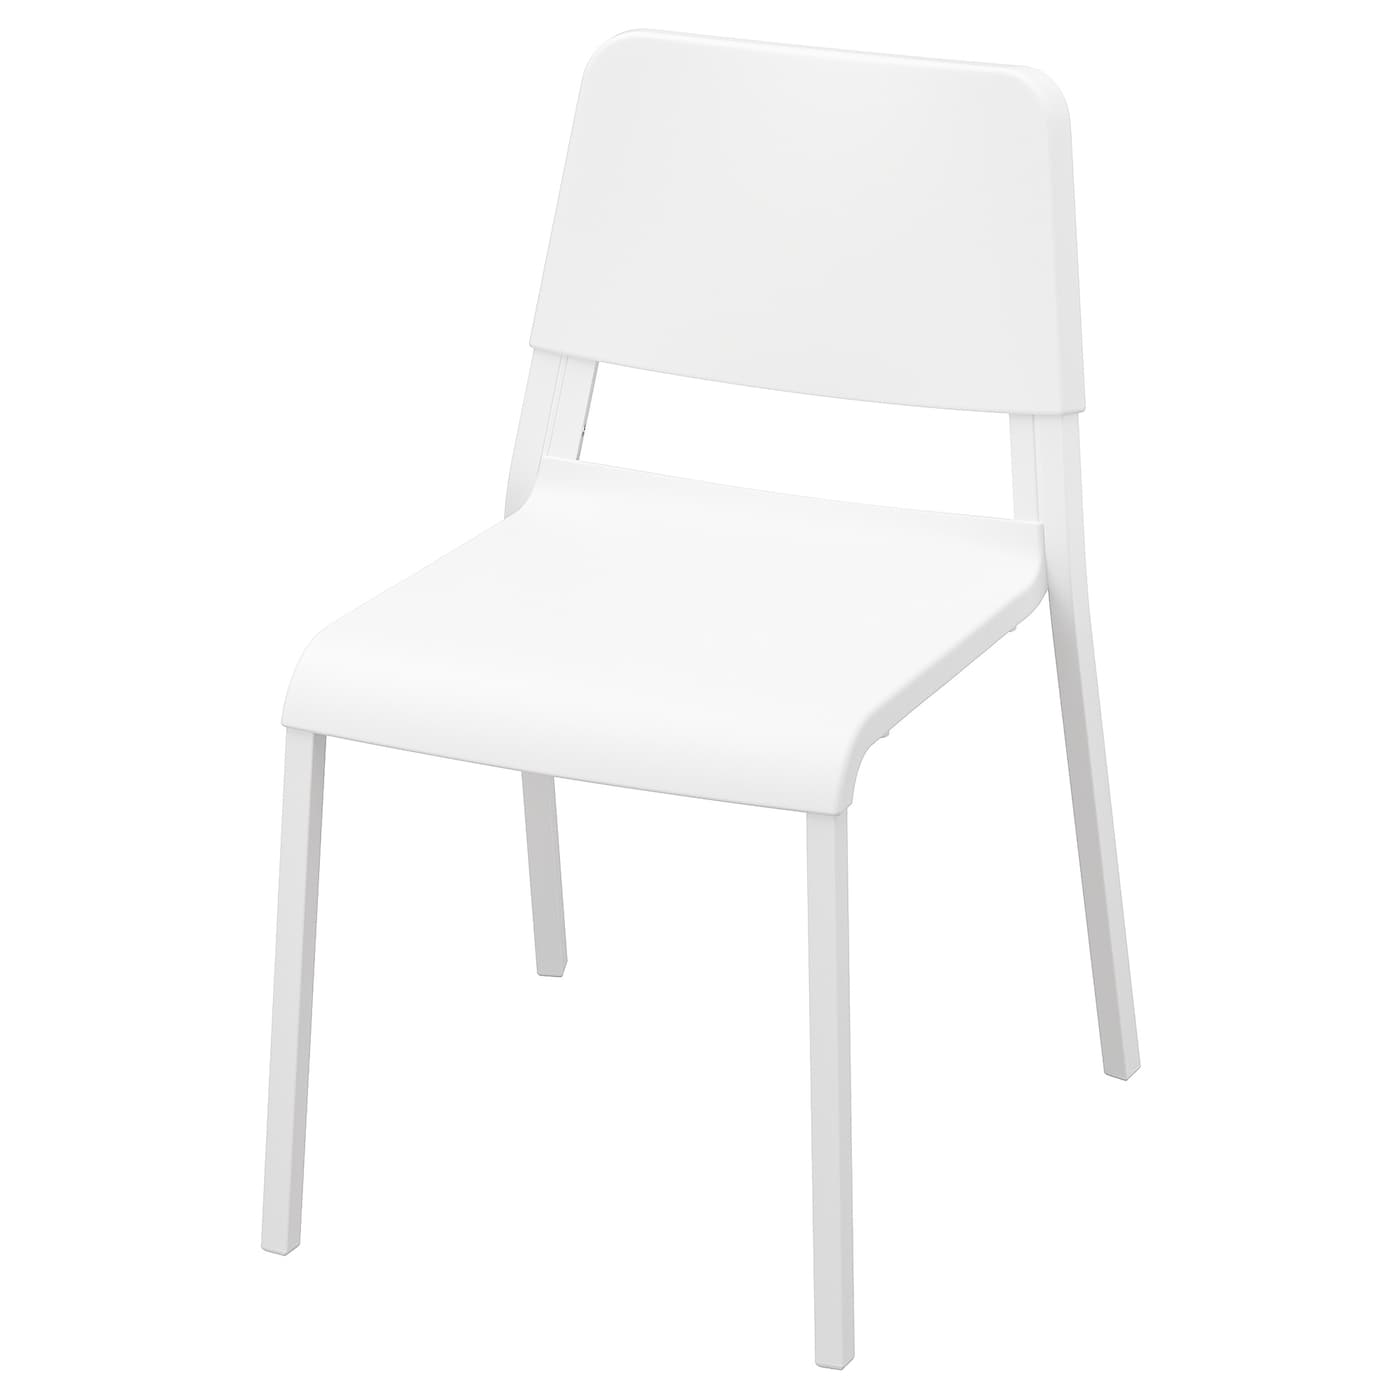 TEODORES Chair White IKEA